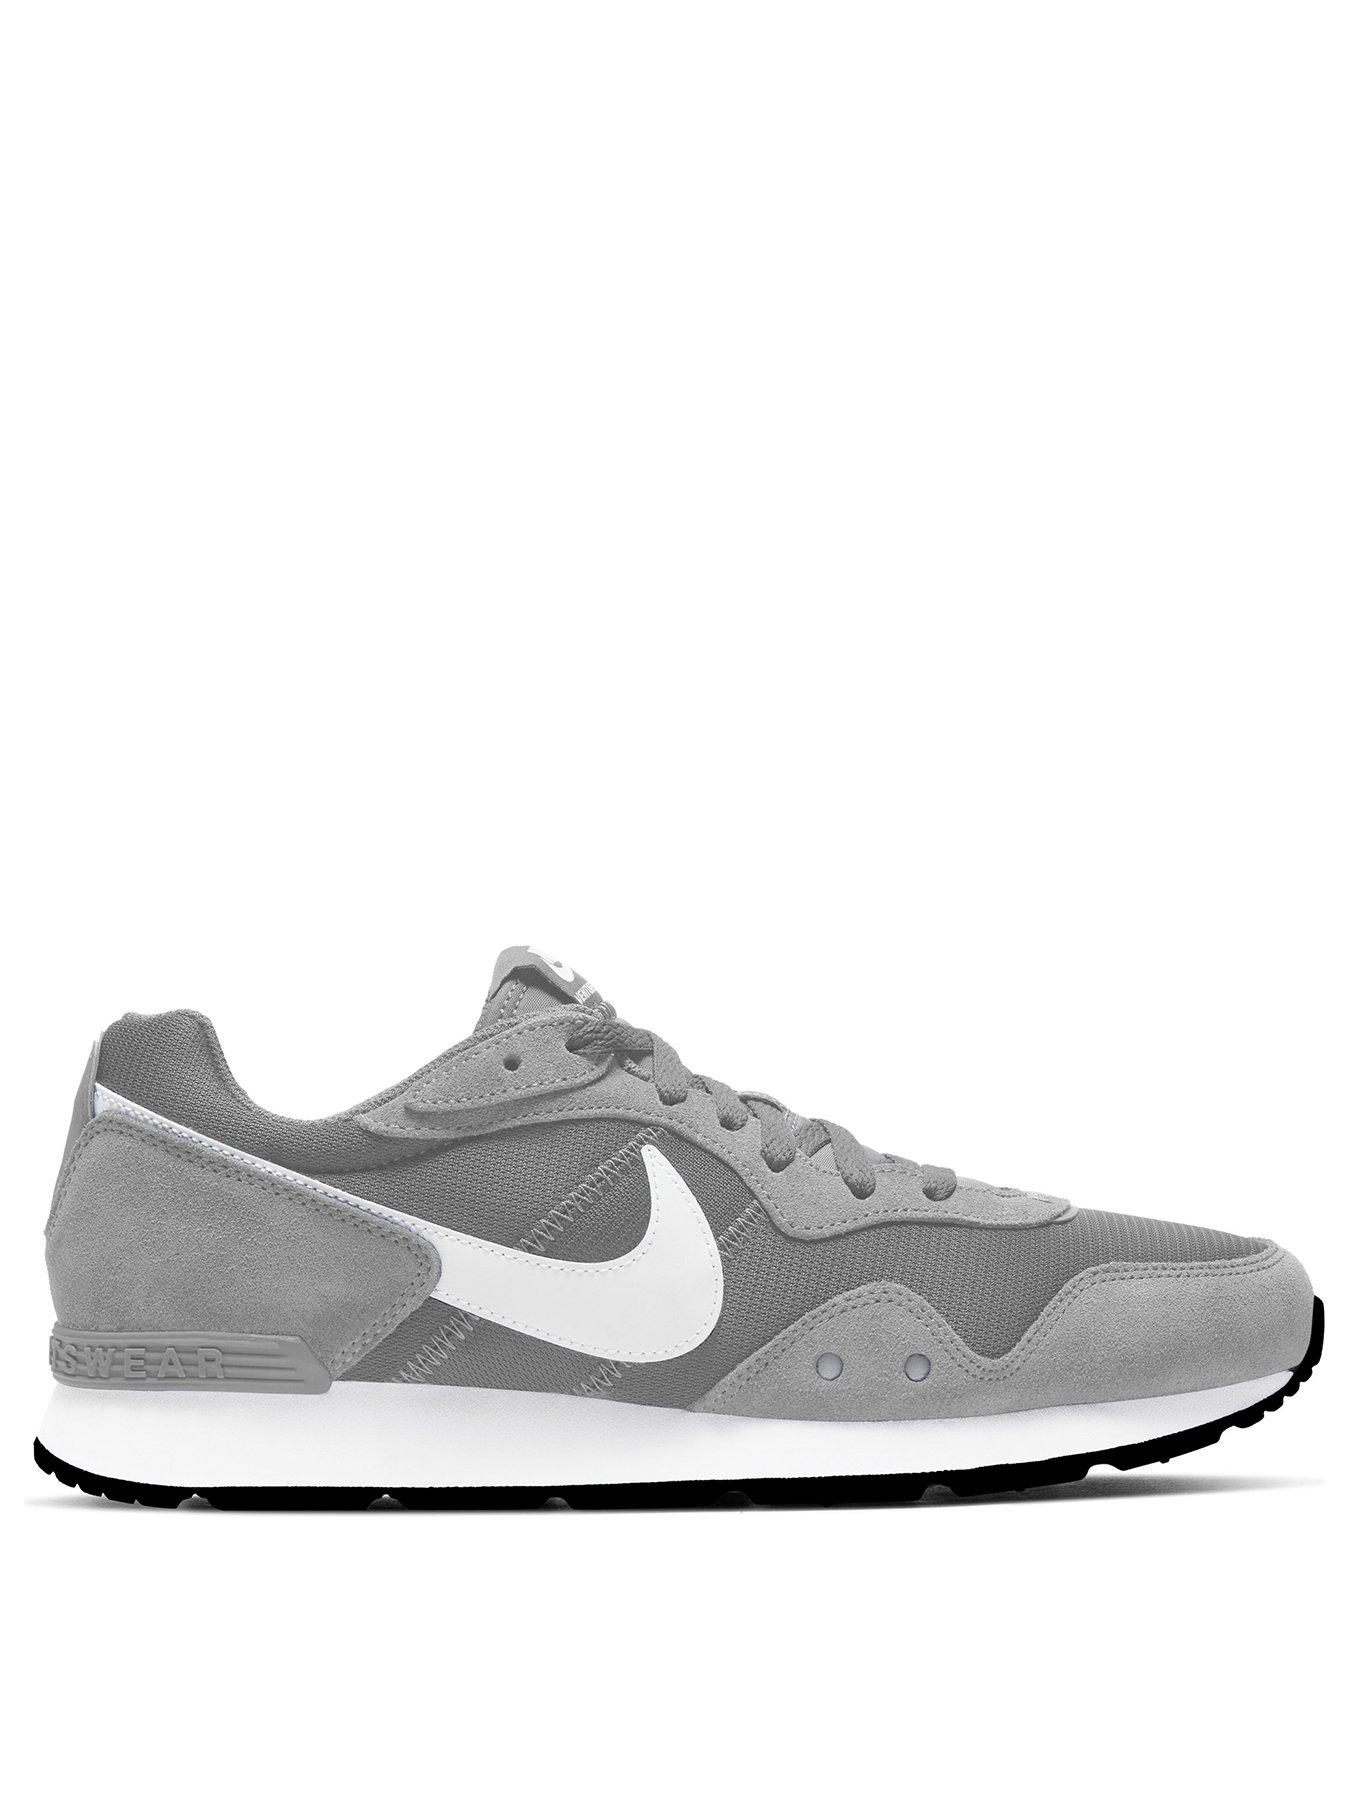 Men's Running Shoes   Trainers